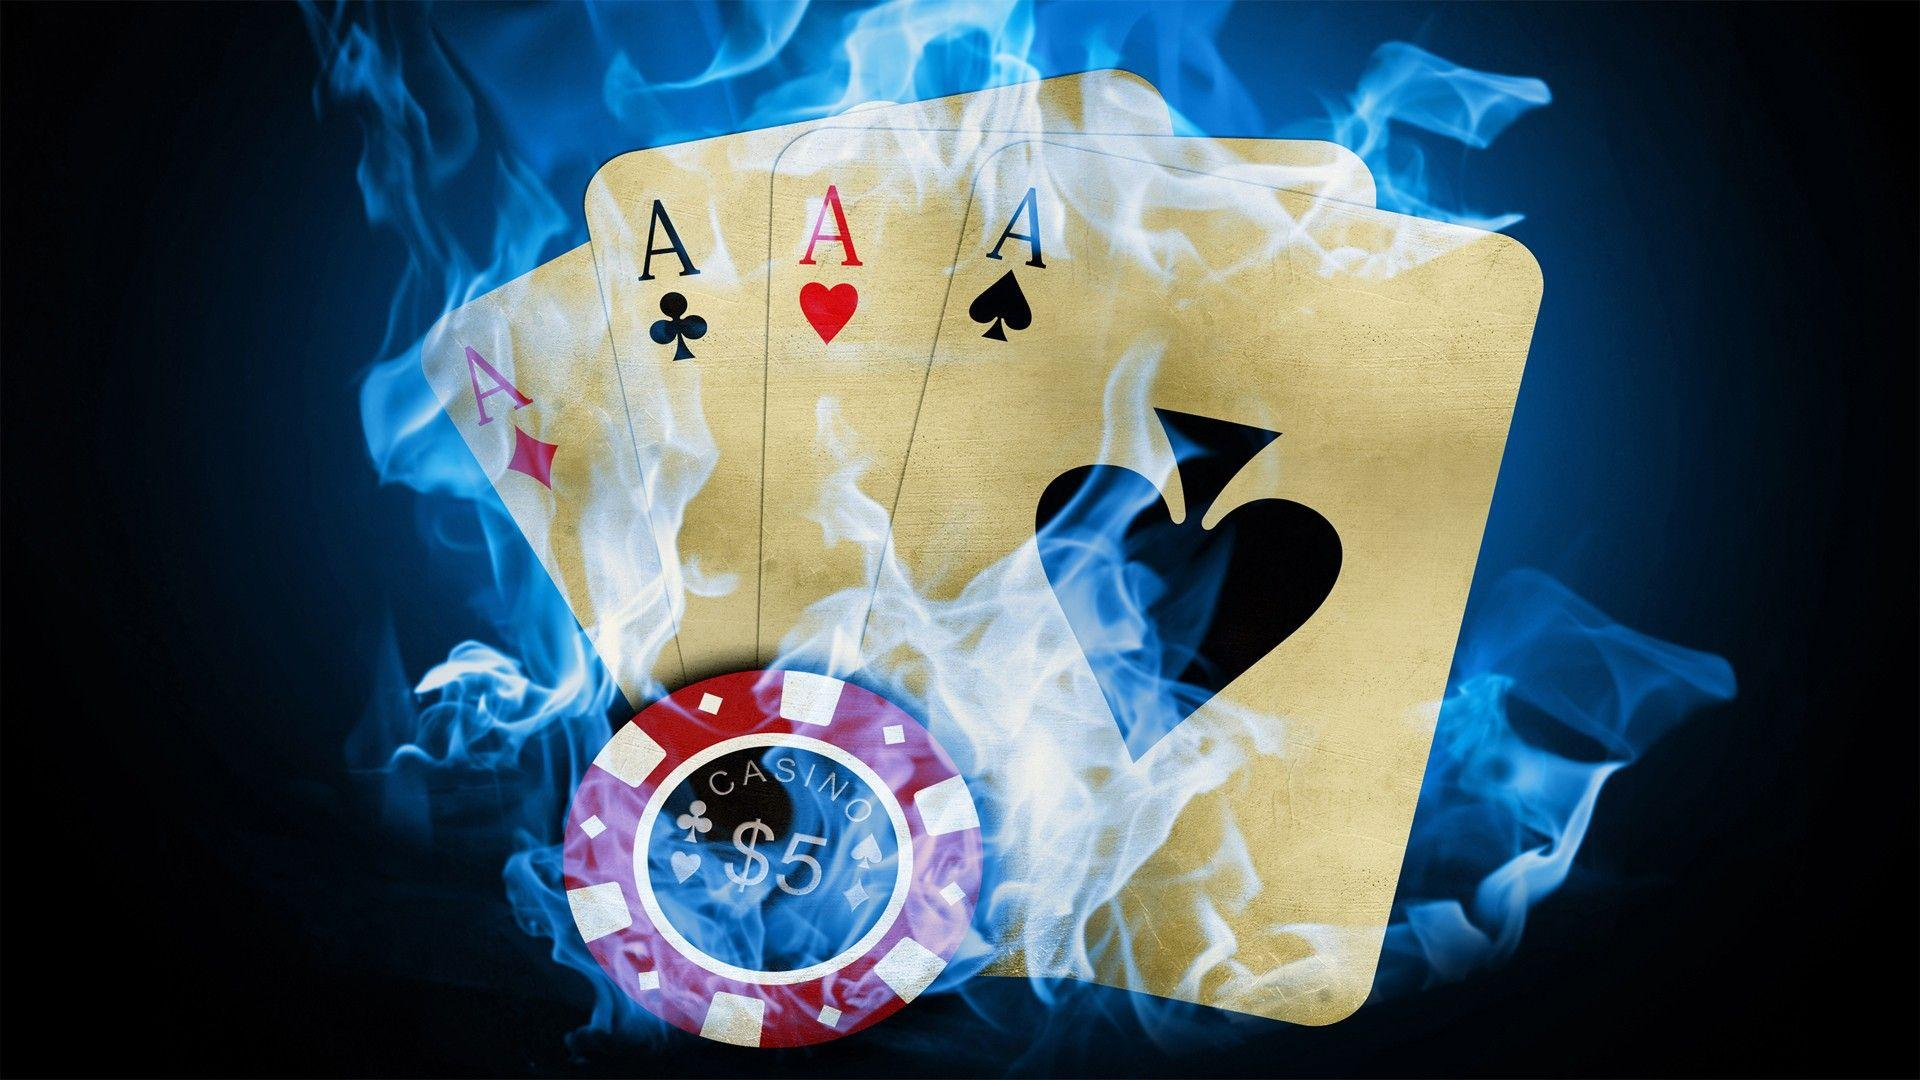 The way forward for Casino